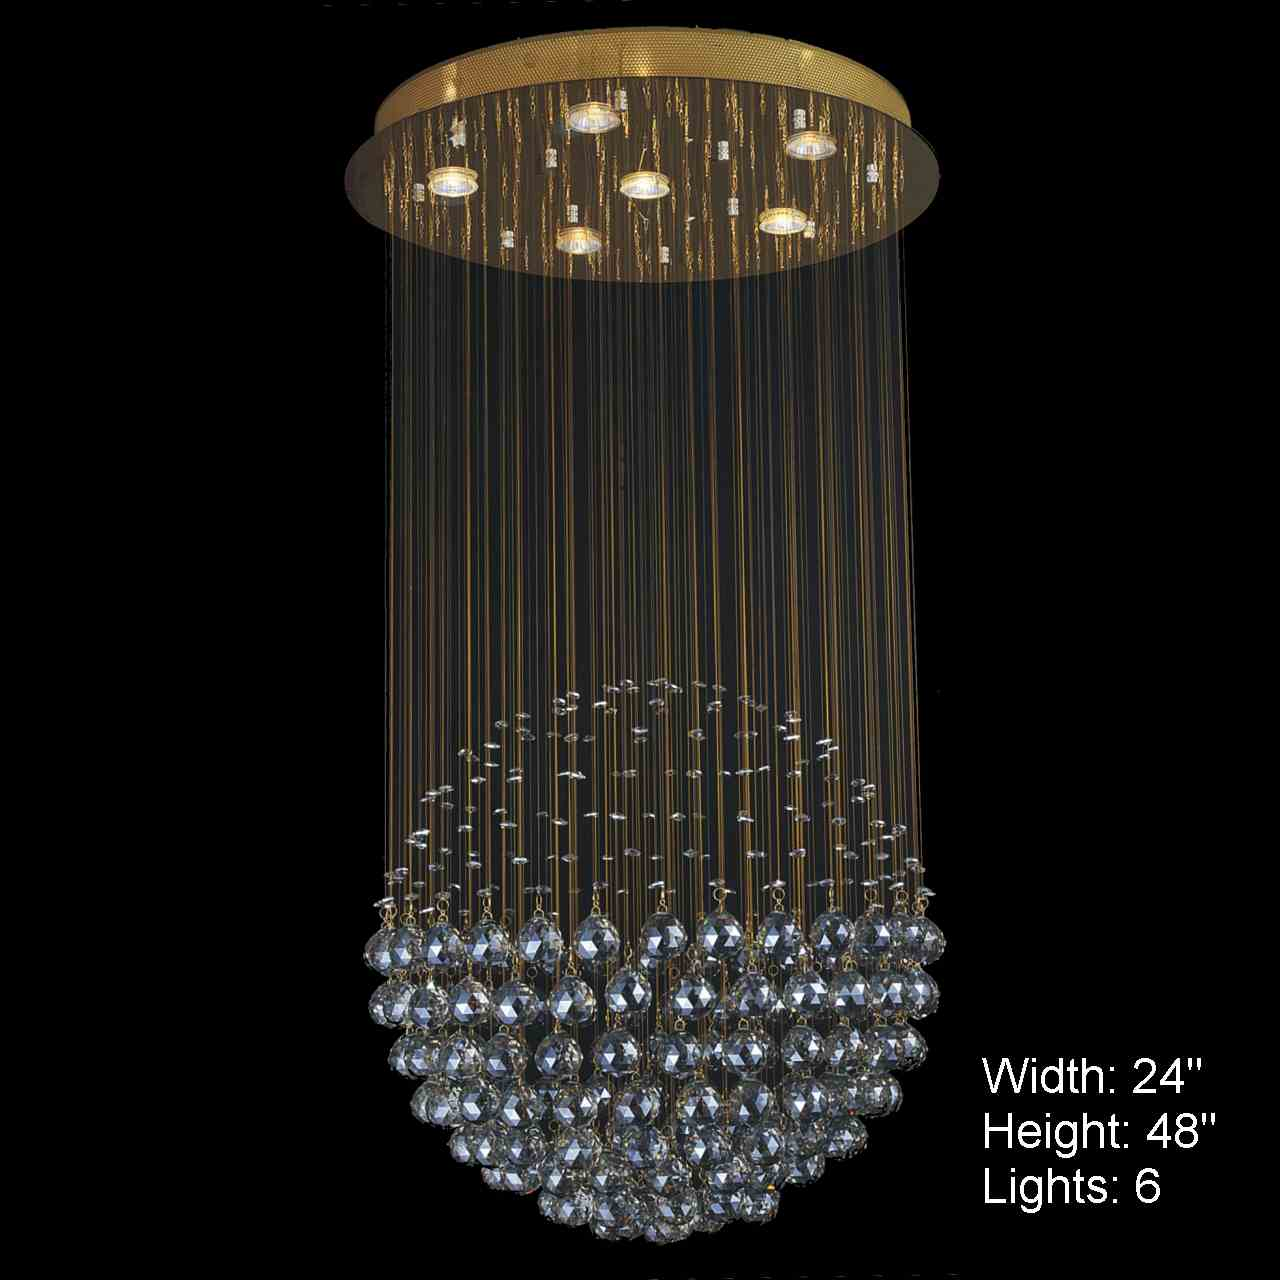 Brizzo lighting stores sphere modern crystal chandelier large picture of sphere modern crystal chandelier large mirror stainless steel base 6 lights aloadofball Gallery